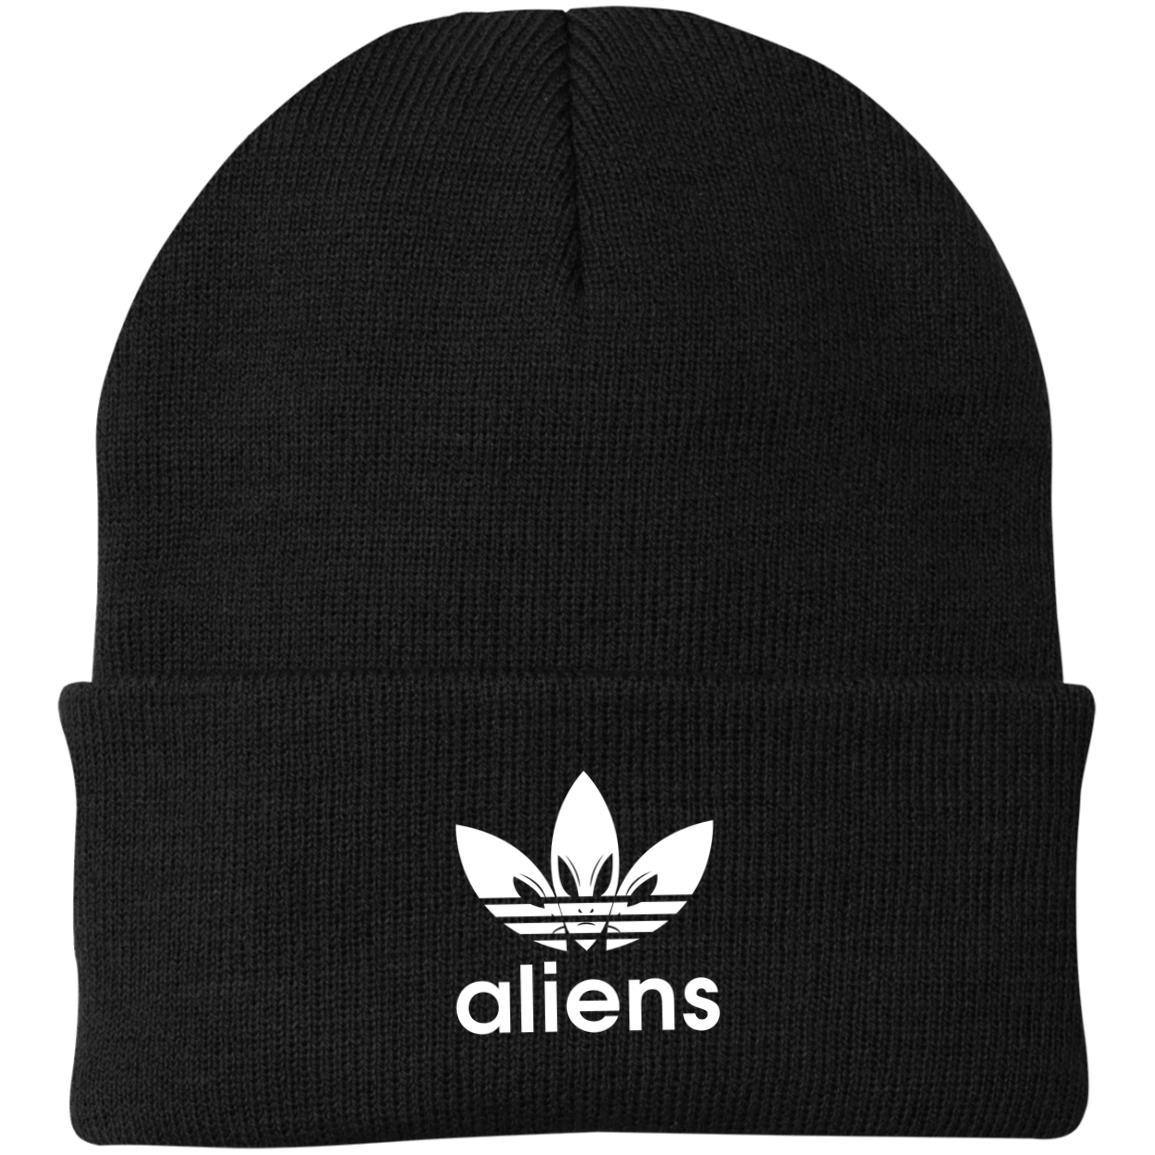 Aliens Winter Hat